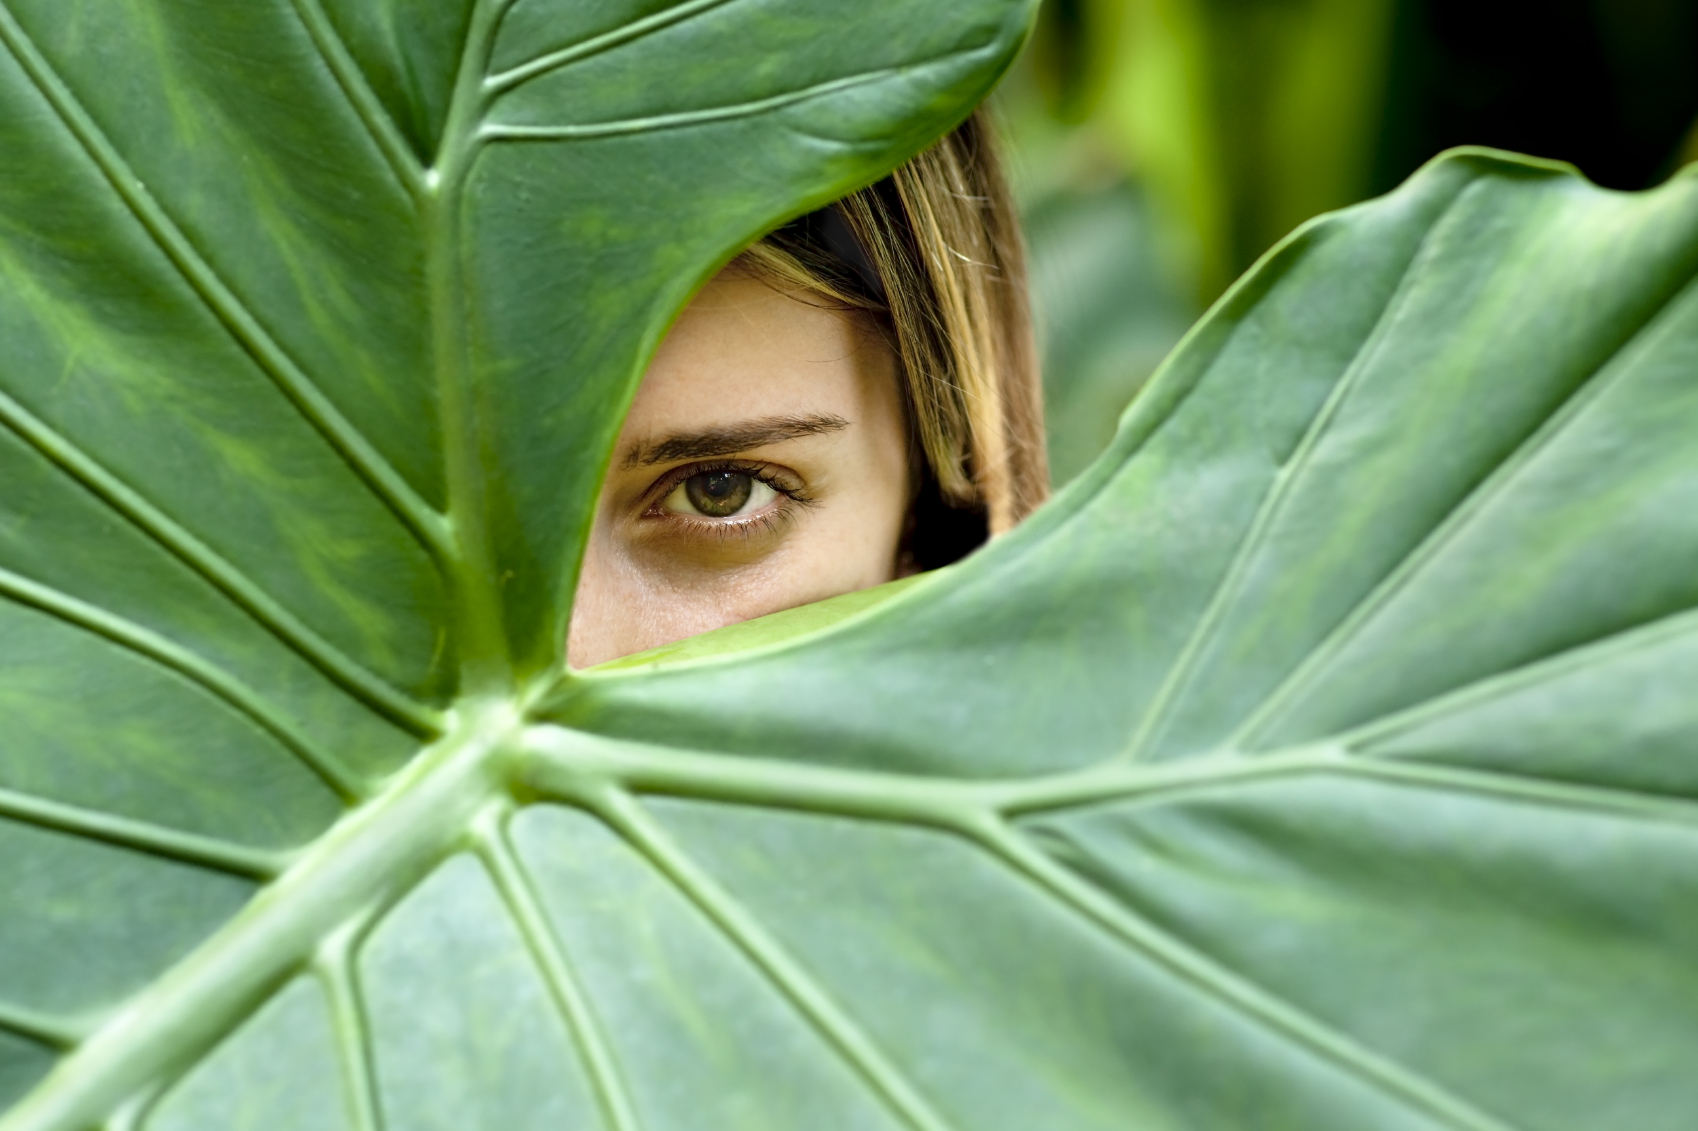 Girl hiding behind a big leaf.